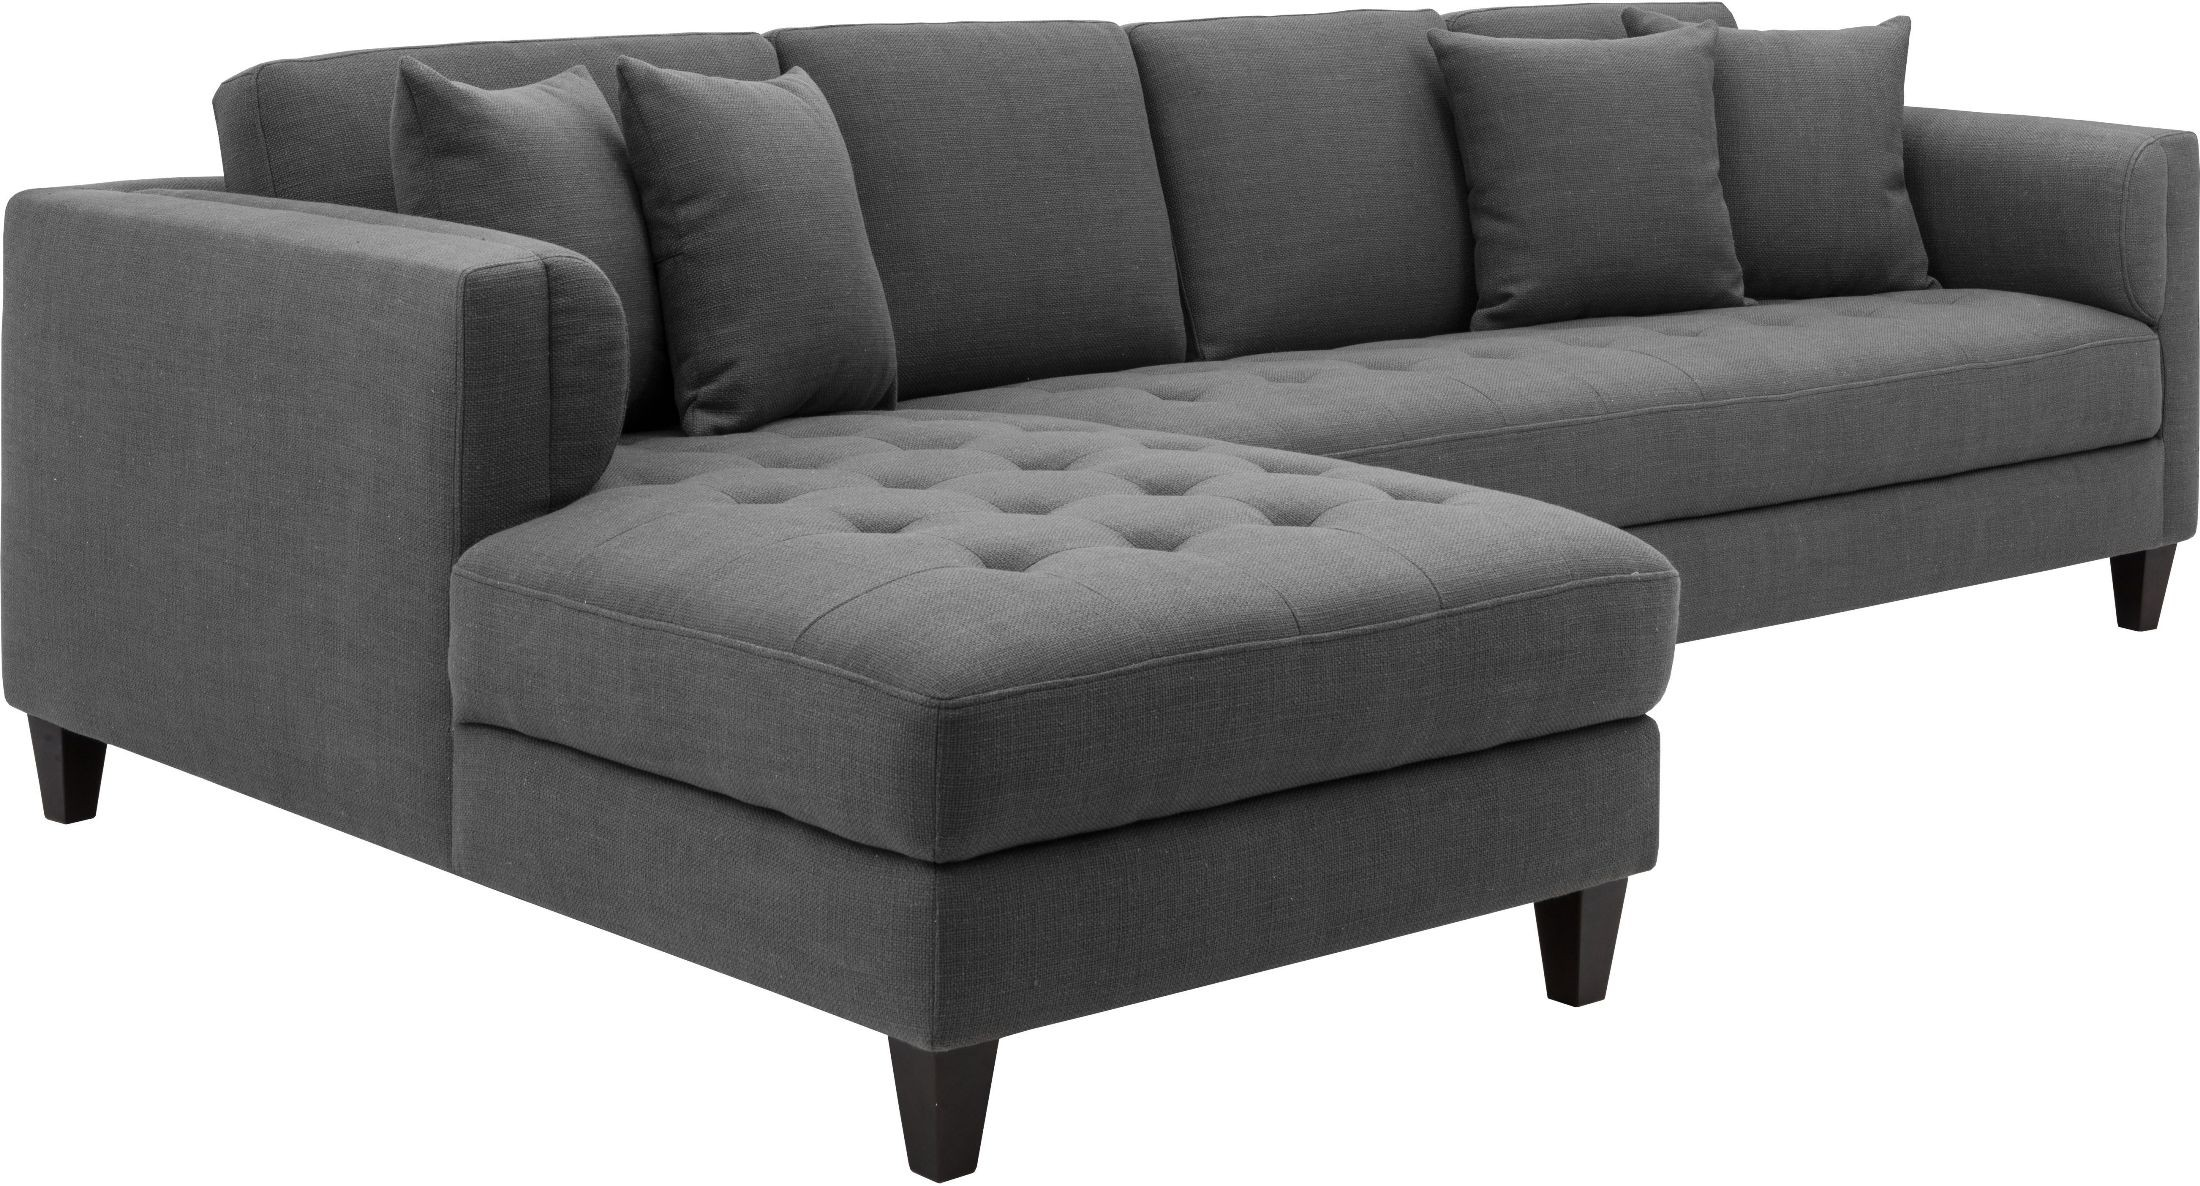 Arthur Grey Tweed Upholstered Laf Sofa Chaise From Sunpan